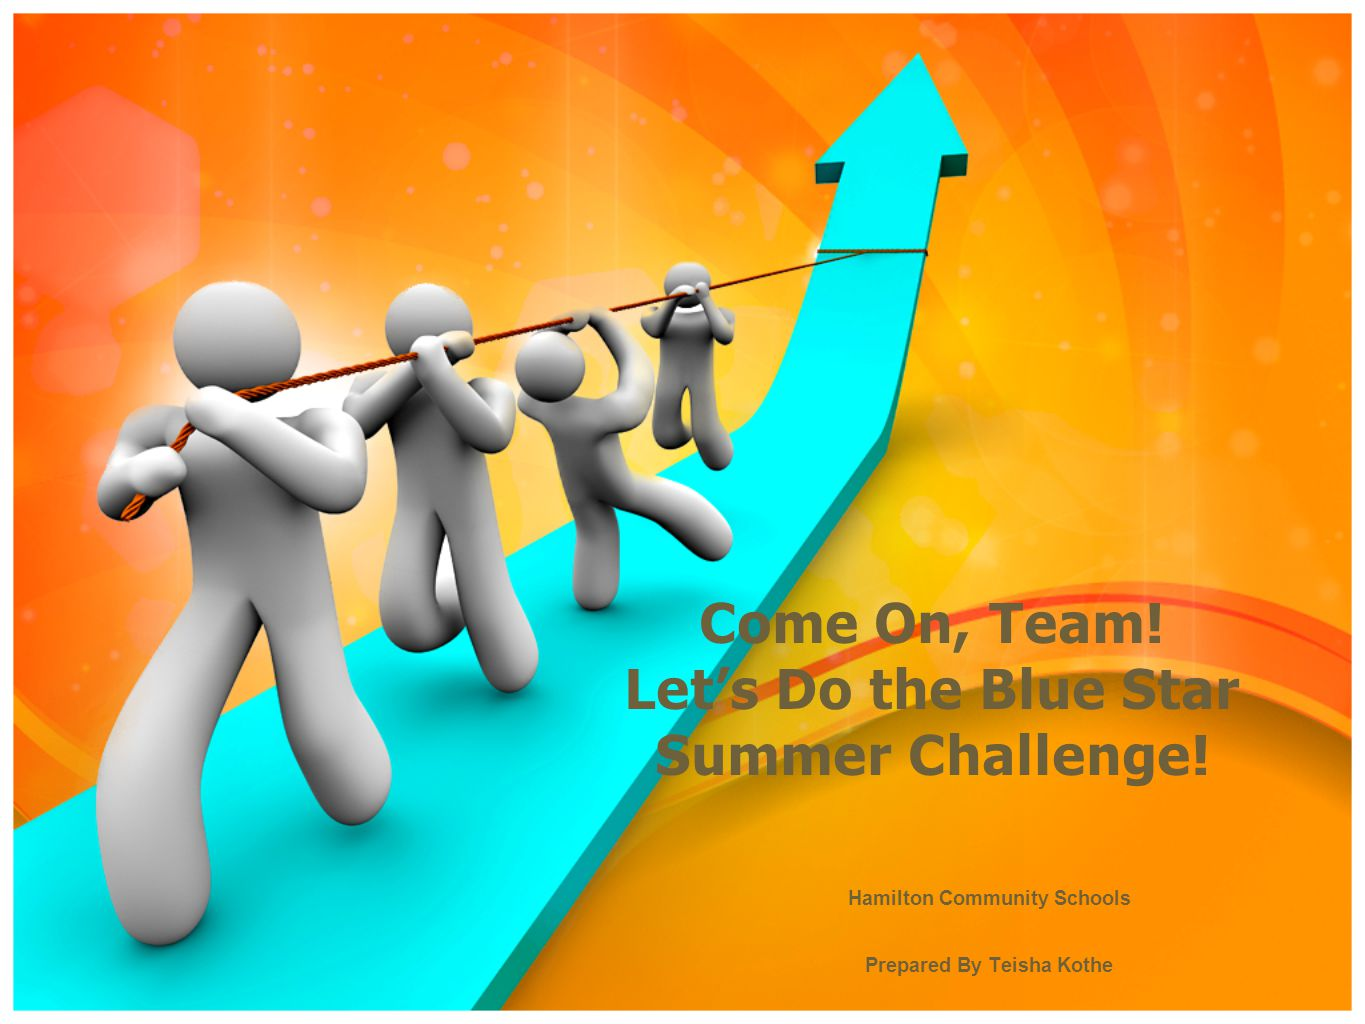 Come On, Team! Let's Do the Blue Star Summer Challenge! Hamilton Community Schools Prepared By Teisha Kothe